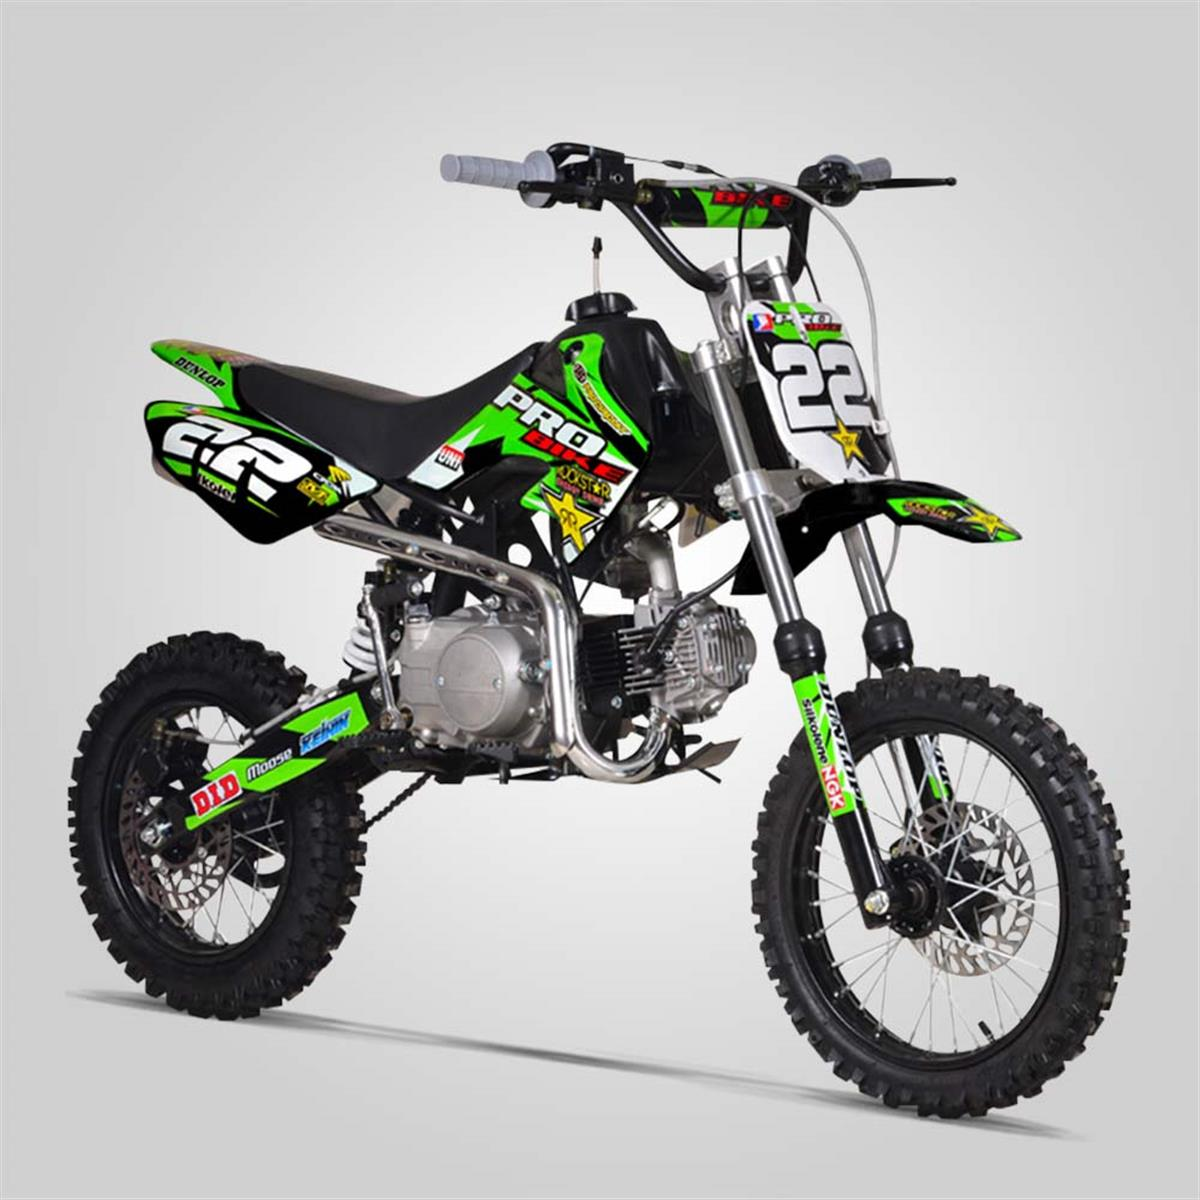 dirt bike probike 110cc semi auto noir 2017 smallmx. Black Bedroom Furniture Sets. Home Design Ideas